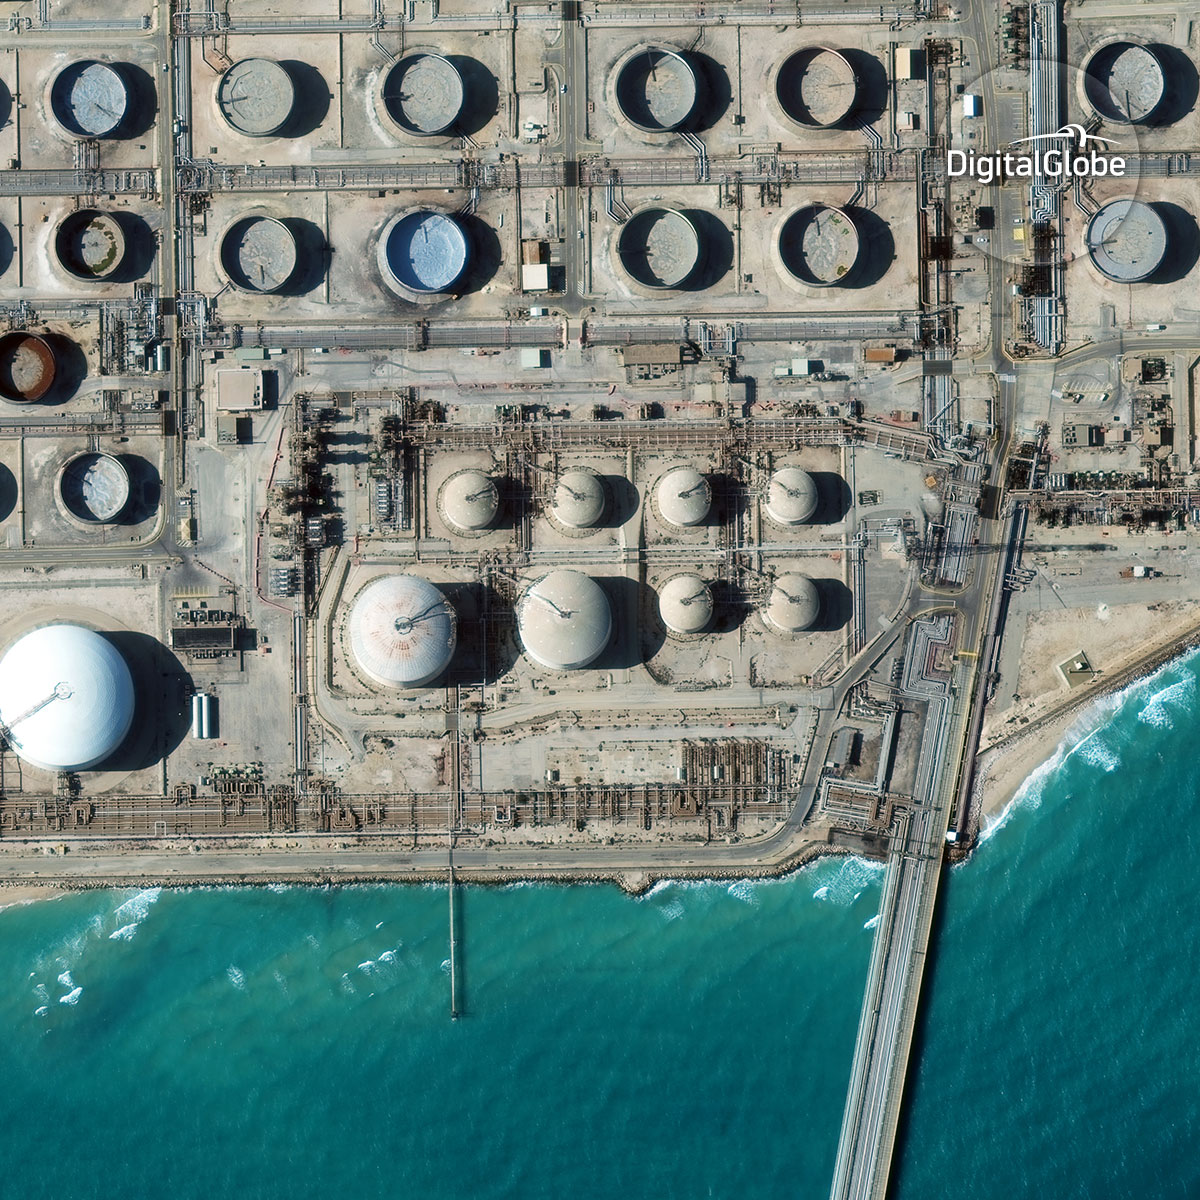 Oil refinery in Ras Tanura, Saudi Arabia captured by WorldView-3.